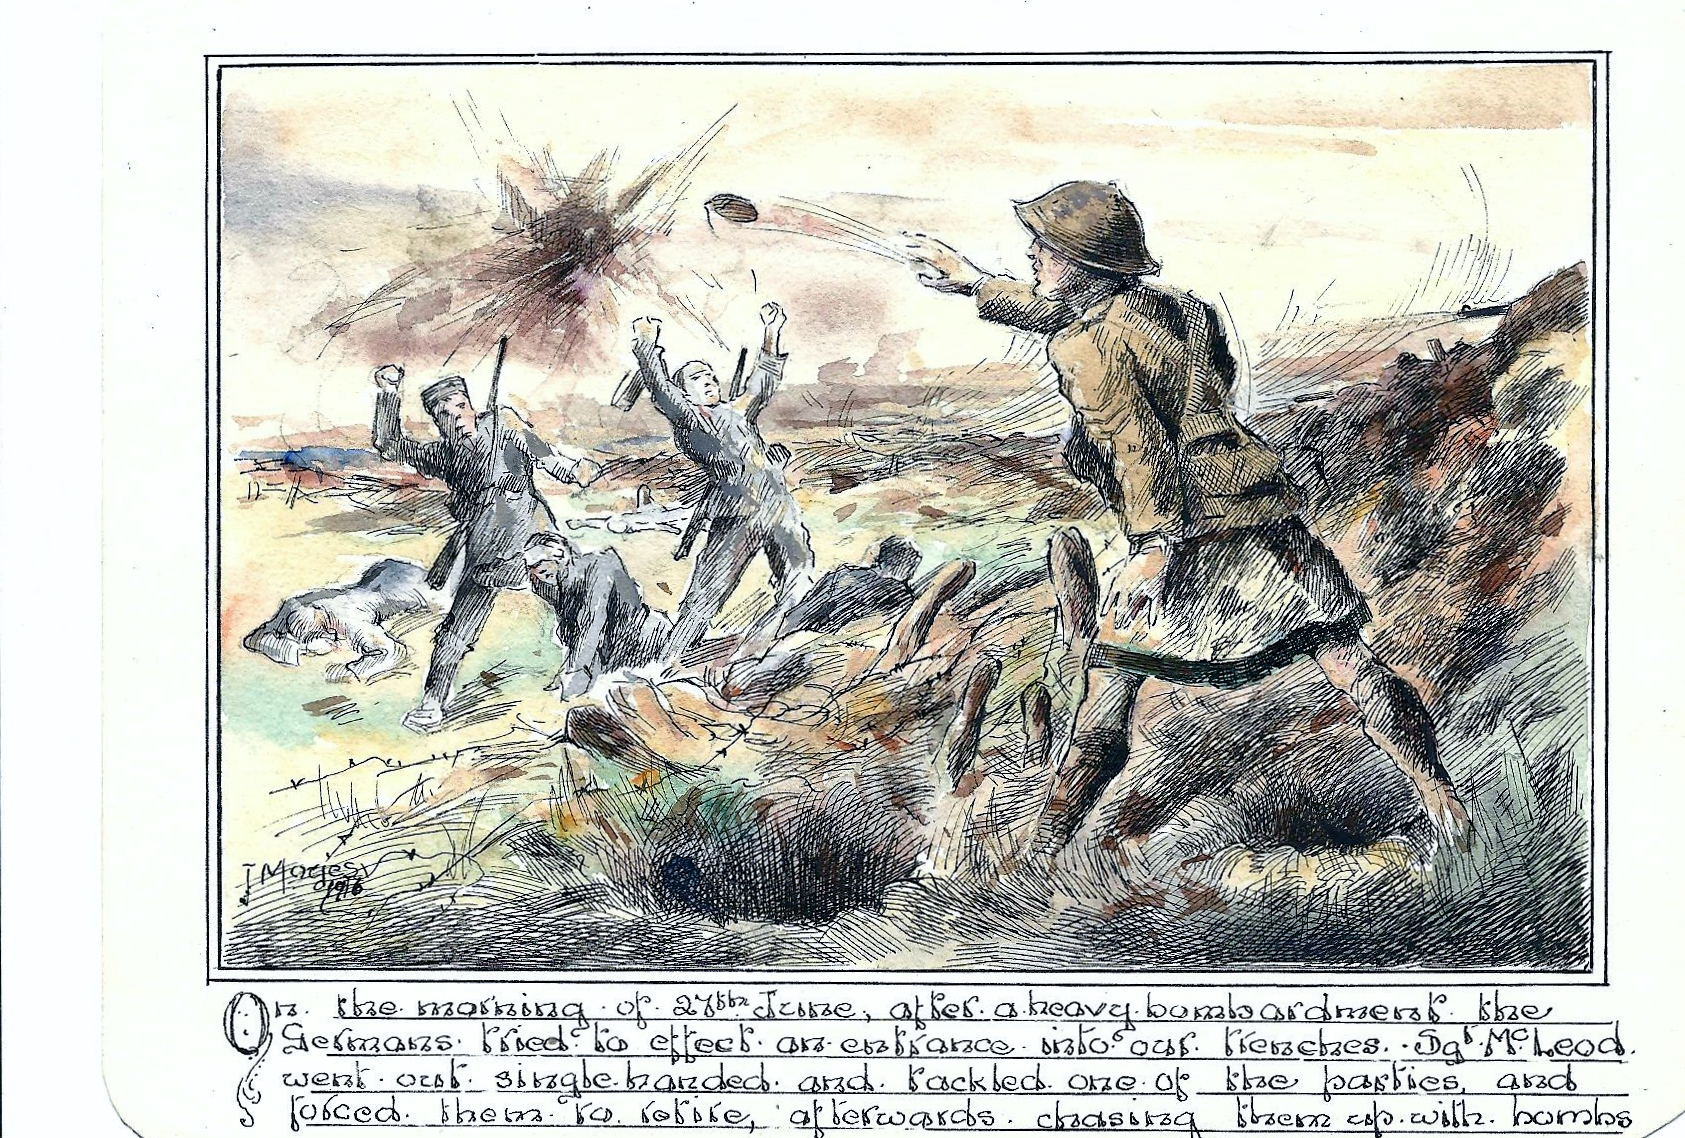 Sketch – From an orginal sketch by the artist J.Moyes depicting the action for which he received the Distinguished Conduct Medal